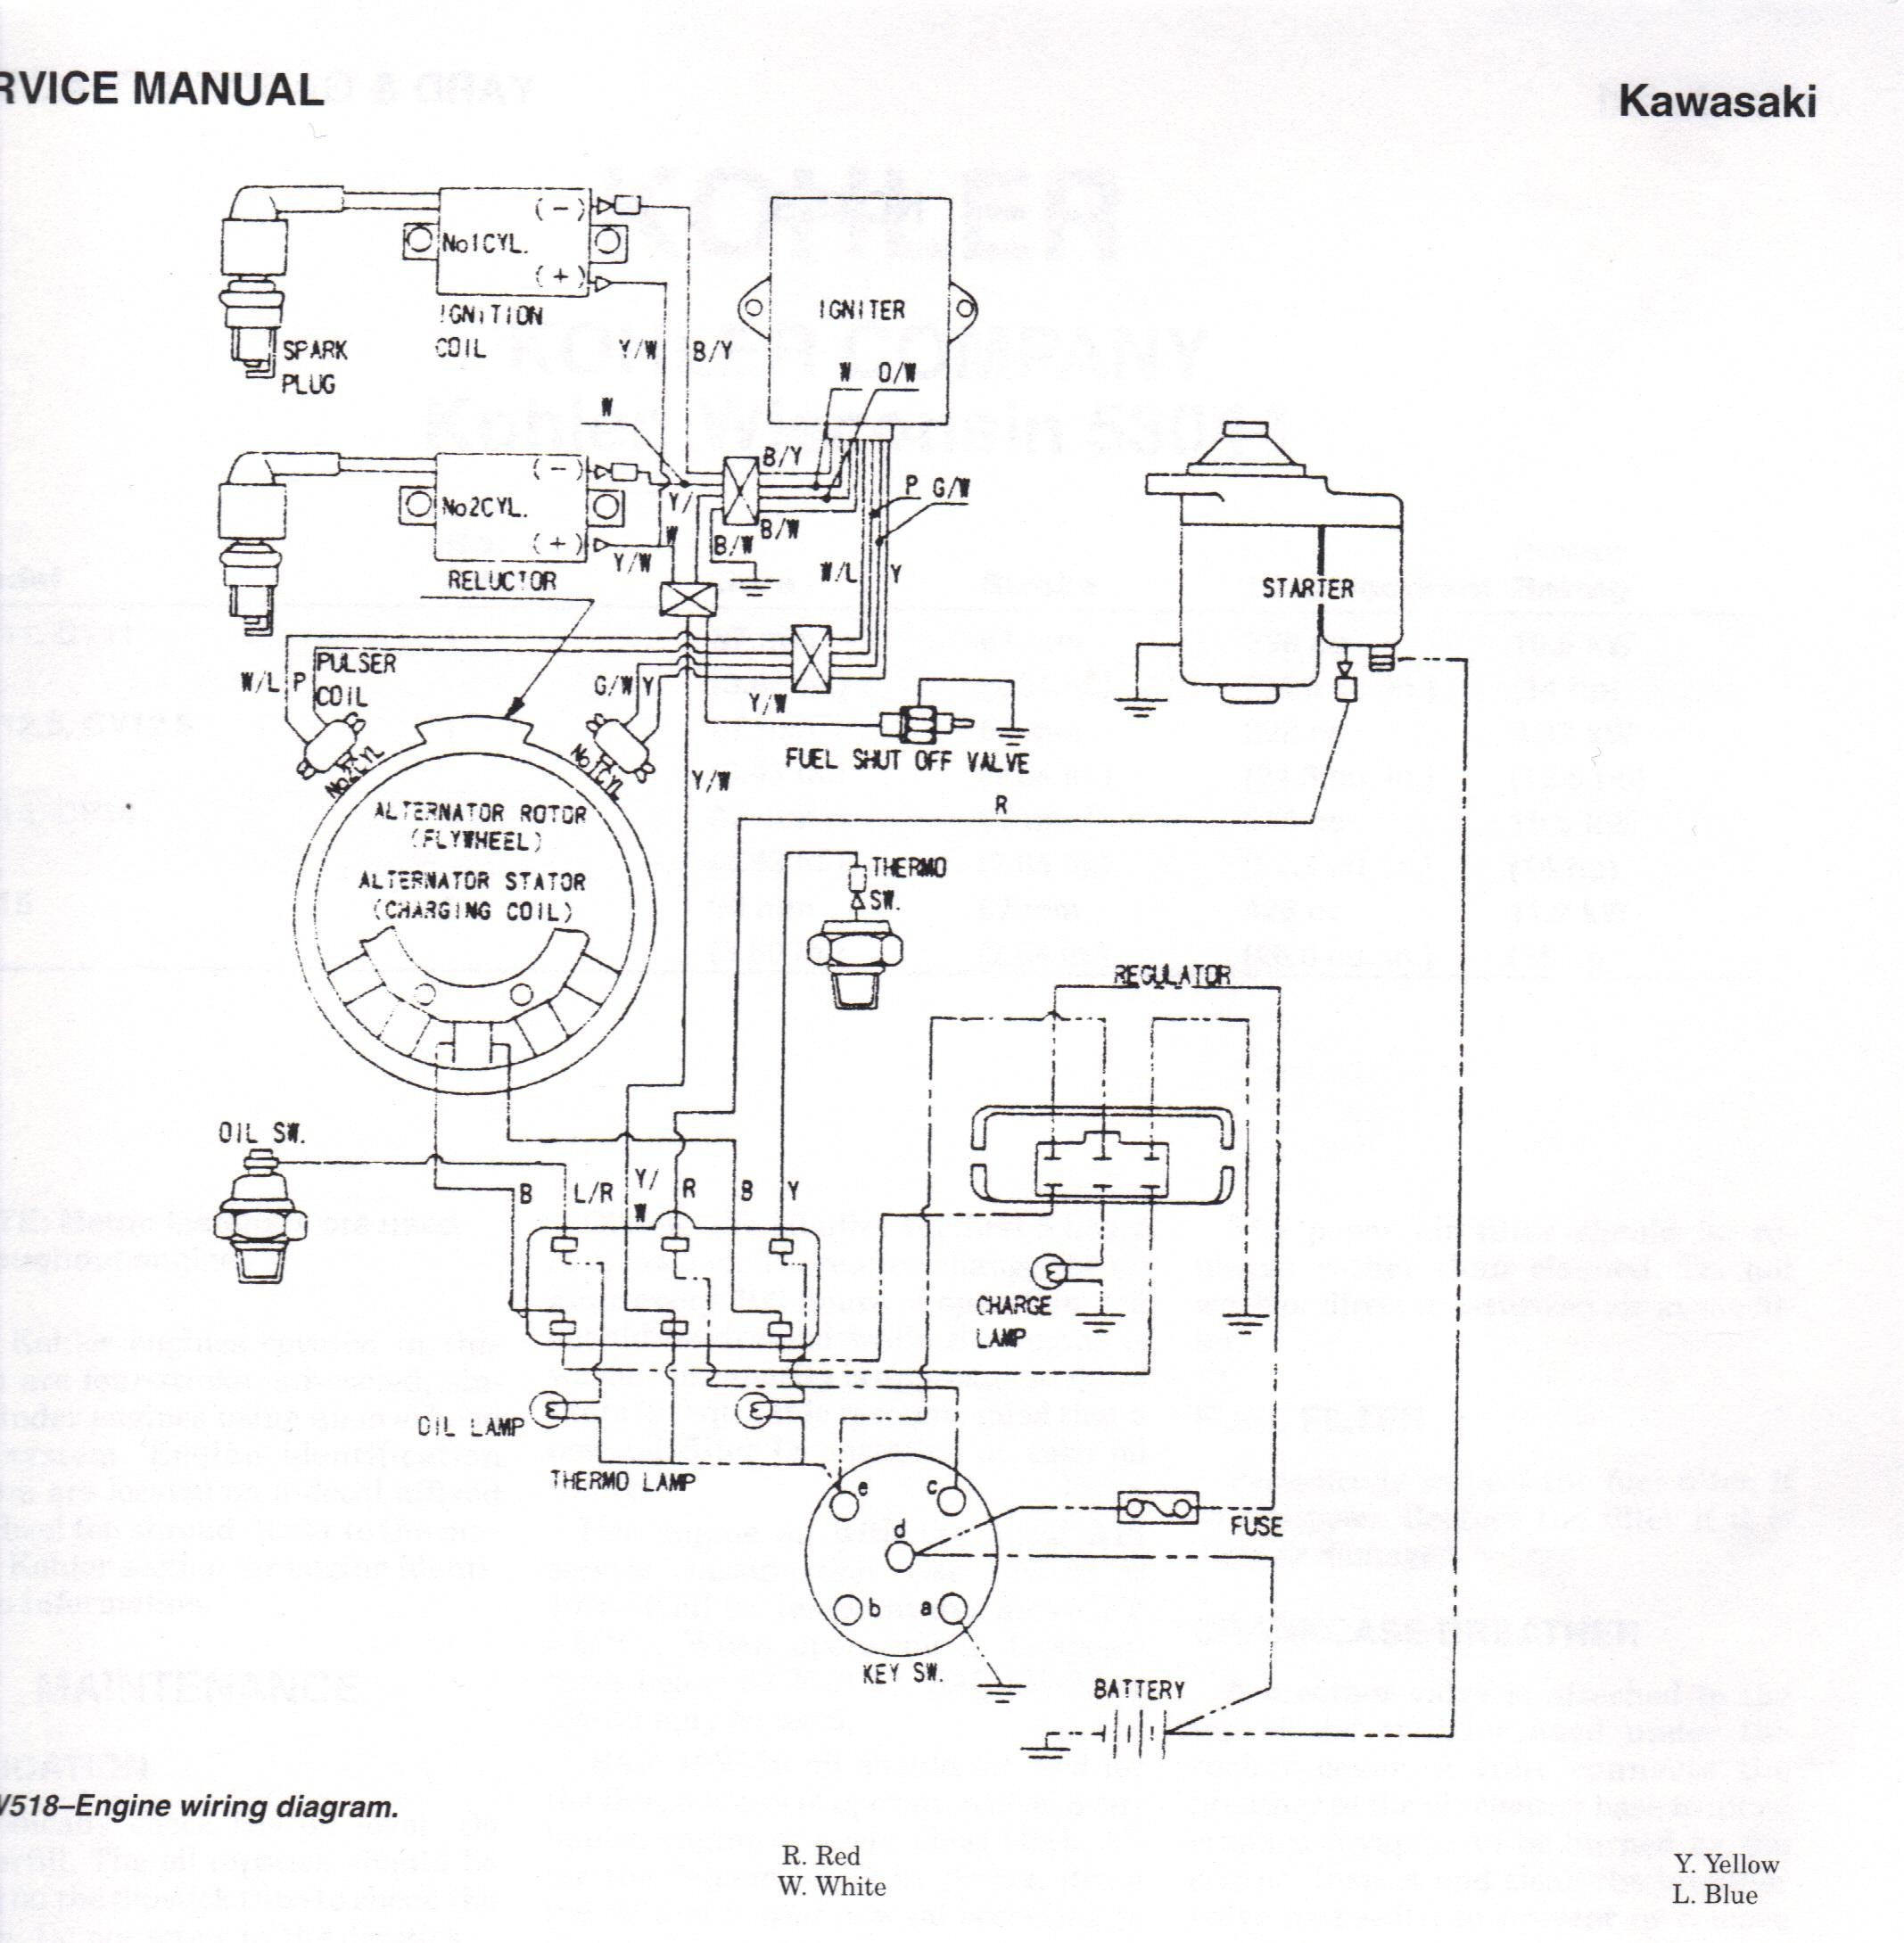 john deere gator tx wiring diagram Collection-wiring diagram for john deere 212 new john deere gator starter rh sandaoil co John Deere Gator Hydraulic Diagram John Deere Gator Engine Diagram 11-k